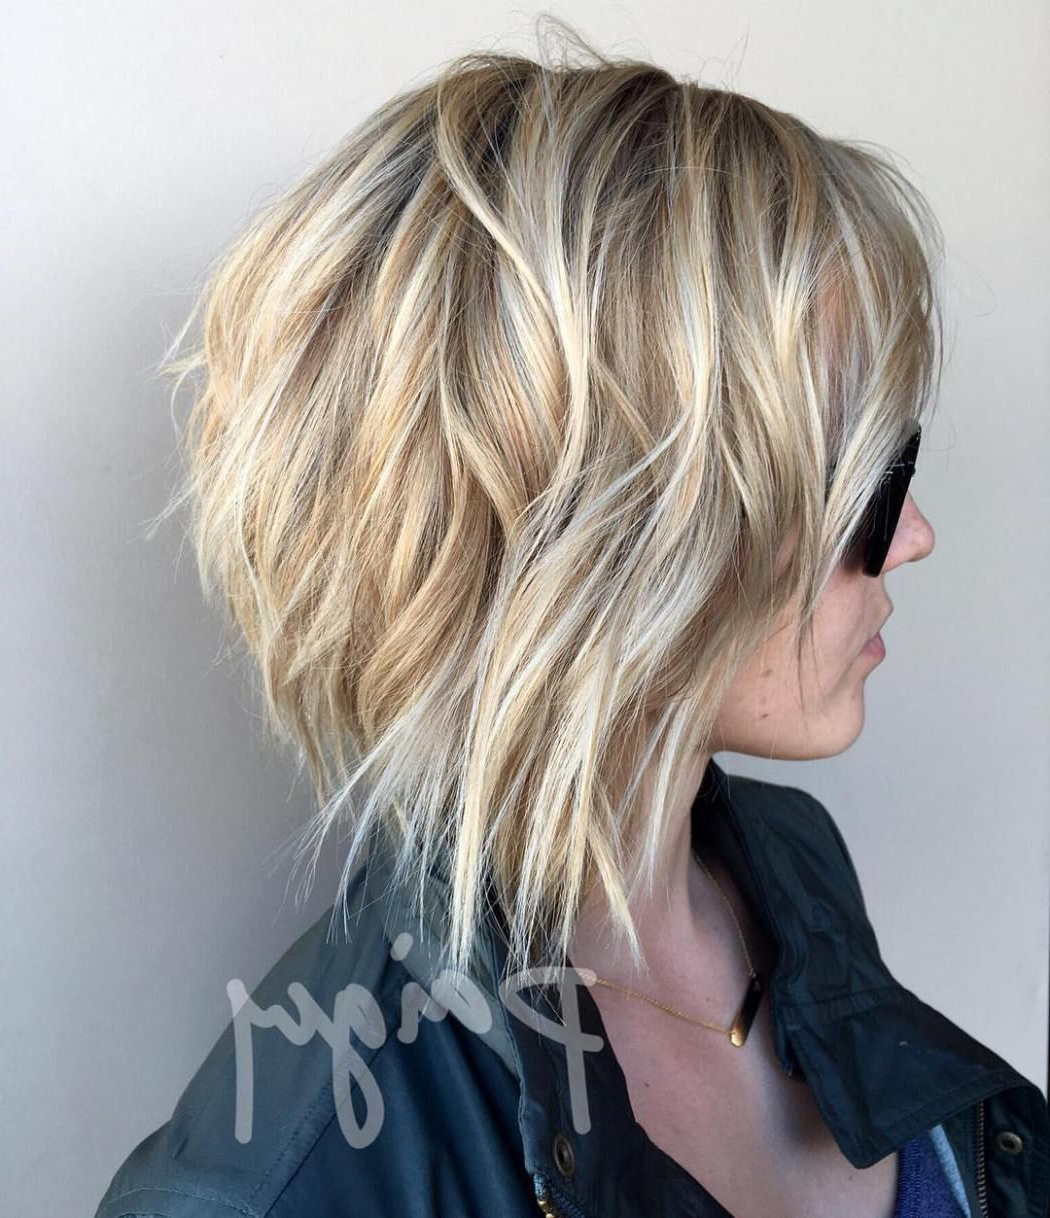 70 Fabulous Choppy Bob Hairstyles In 2018 | Hairstyles | Pinterest With Choppy Golden Blonde Balayage Bob Hairstyles (View 3 of 20)